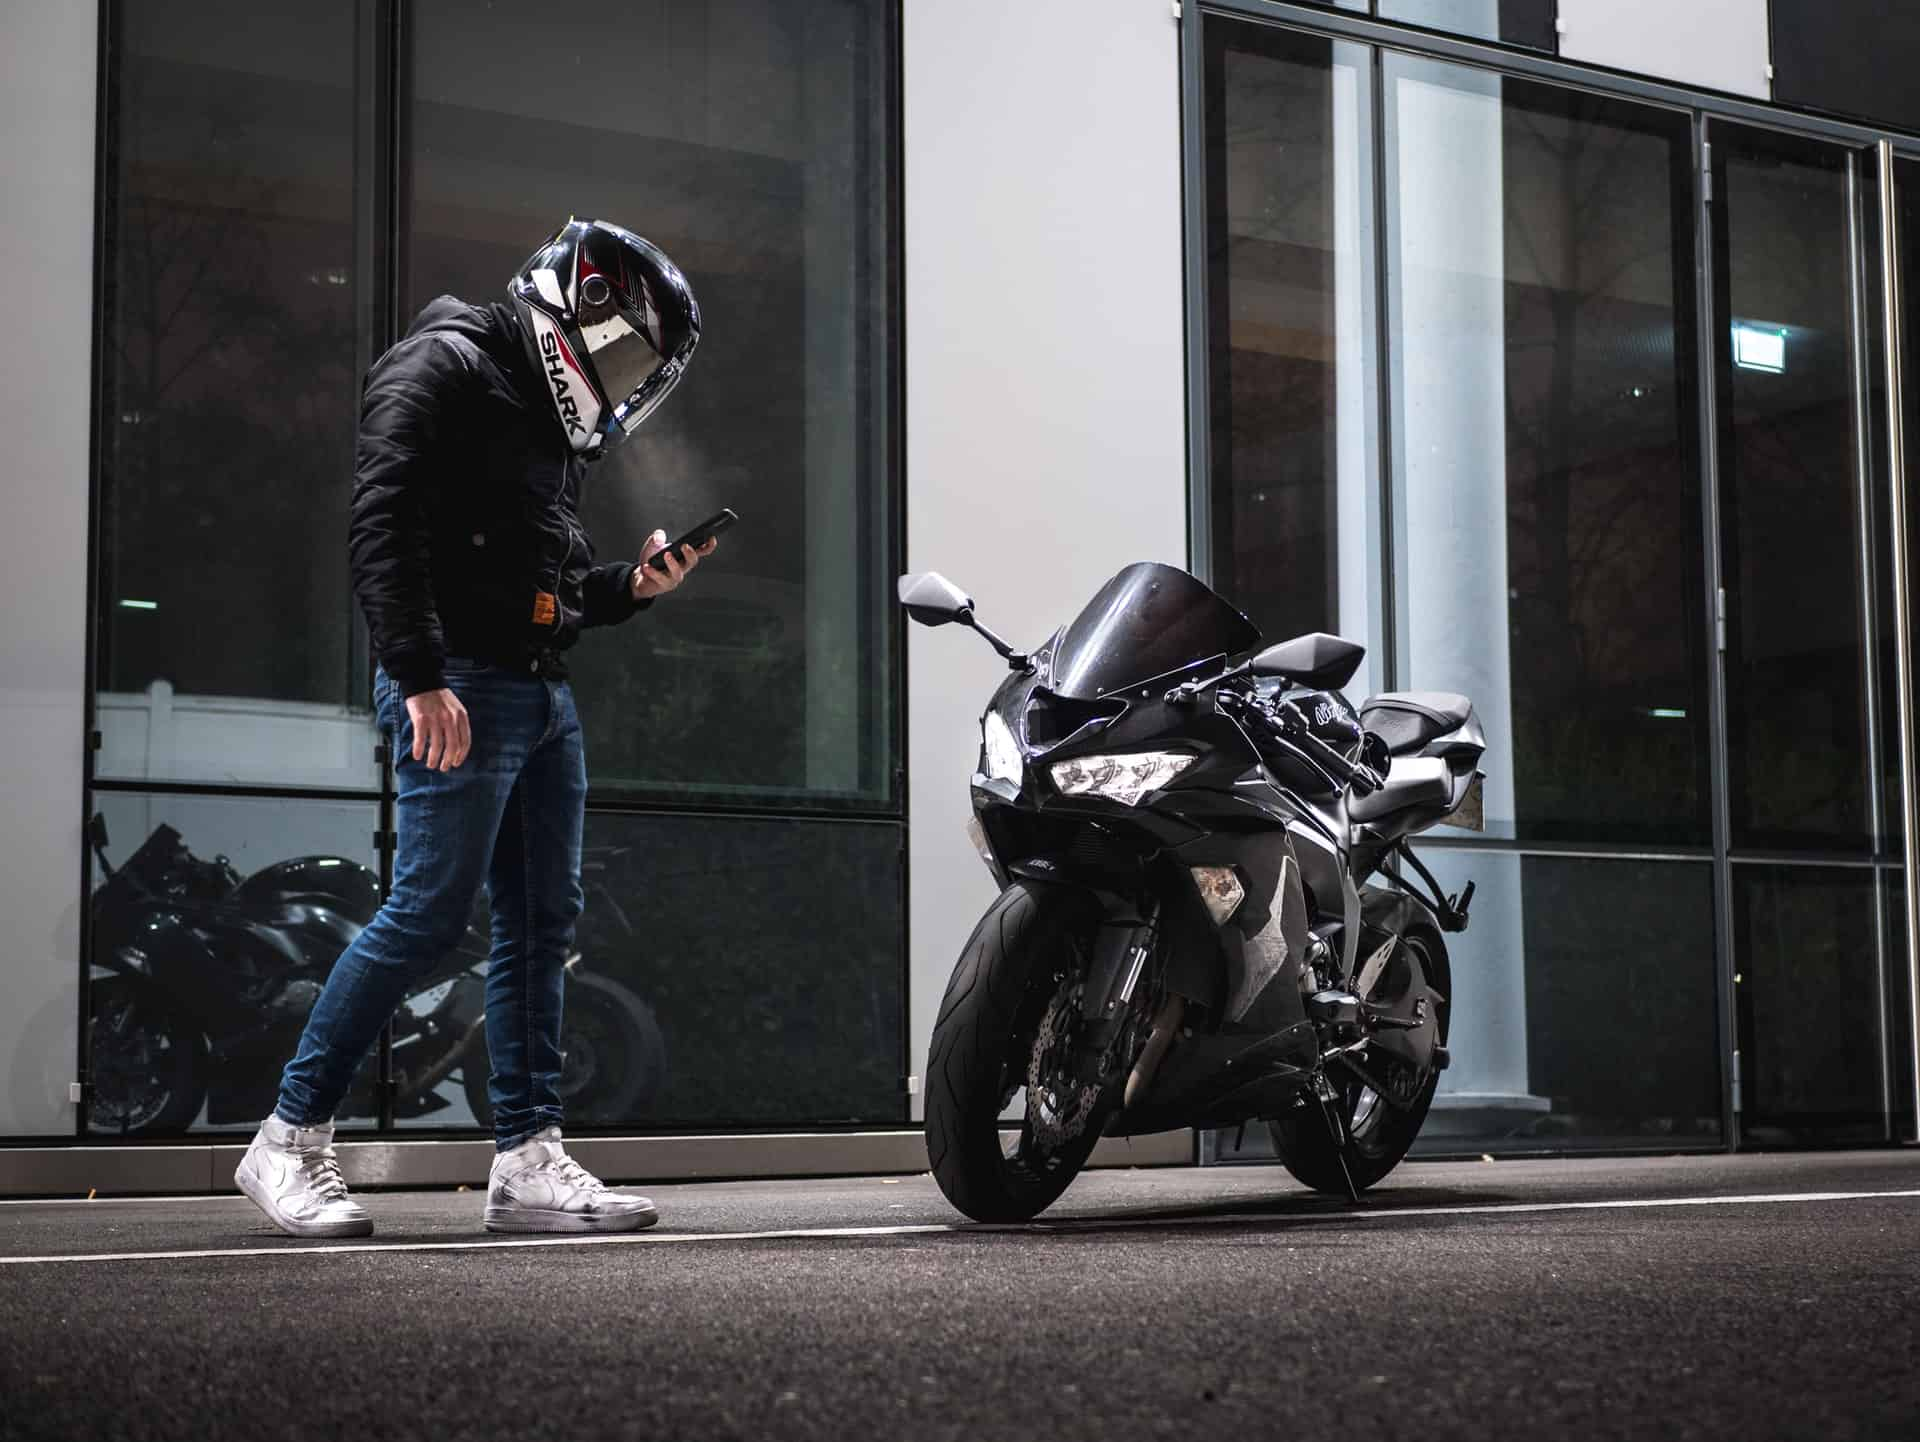 fashion shoes motorcycle rider